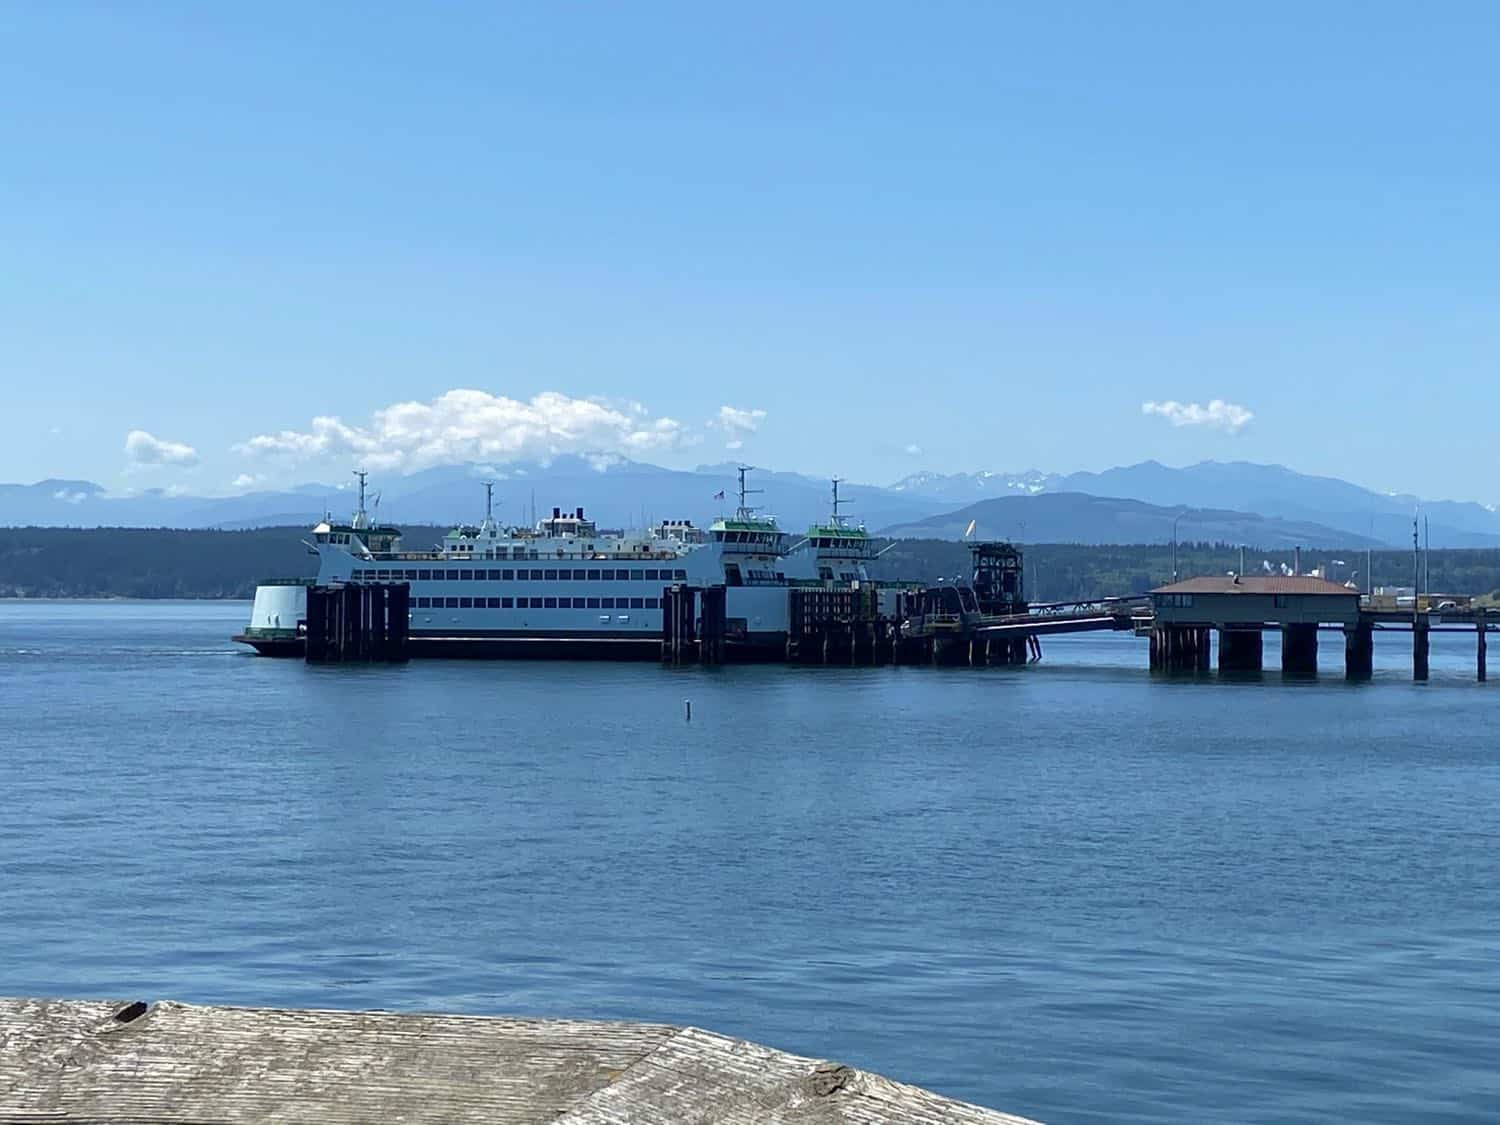 Blue water looks out onto a ferry at the dock with mountains in the distance